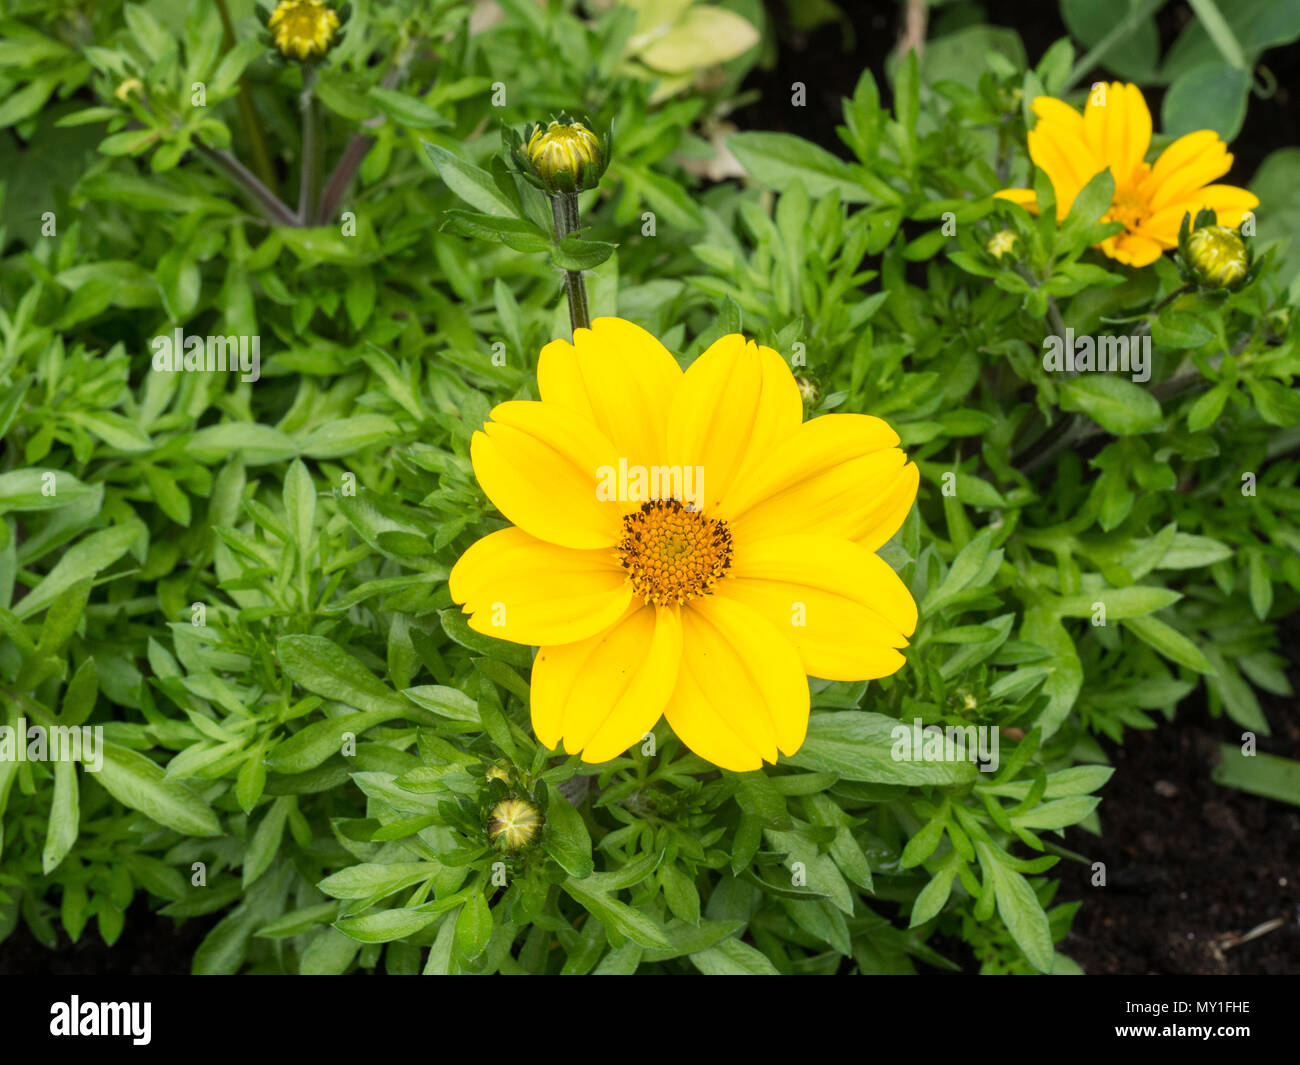 Canary yellow flowers stock photos canary yellow flowers stock a close up of the bright yellow daisy flower of bidens rockstar stock image mightylinksfo